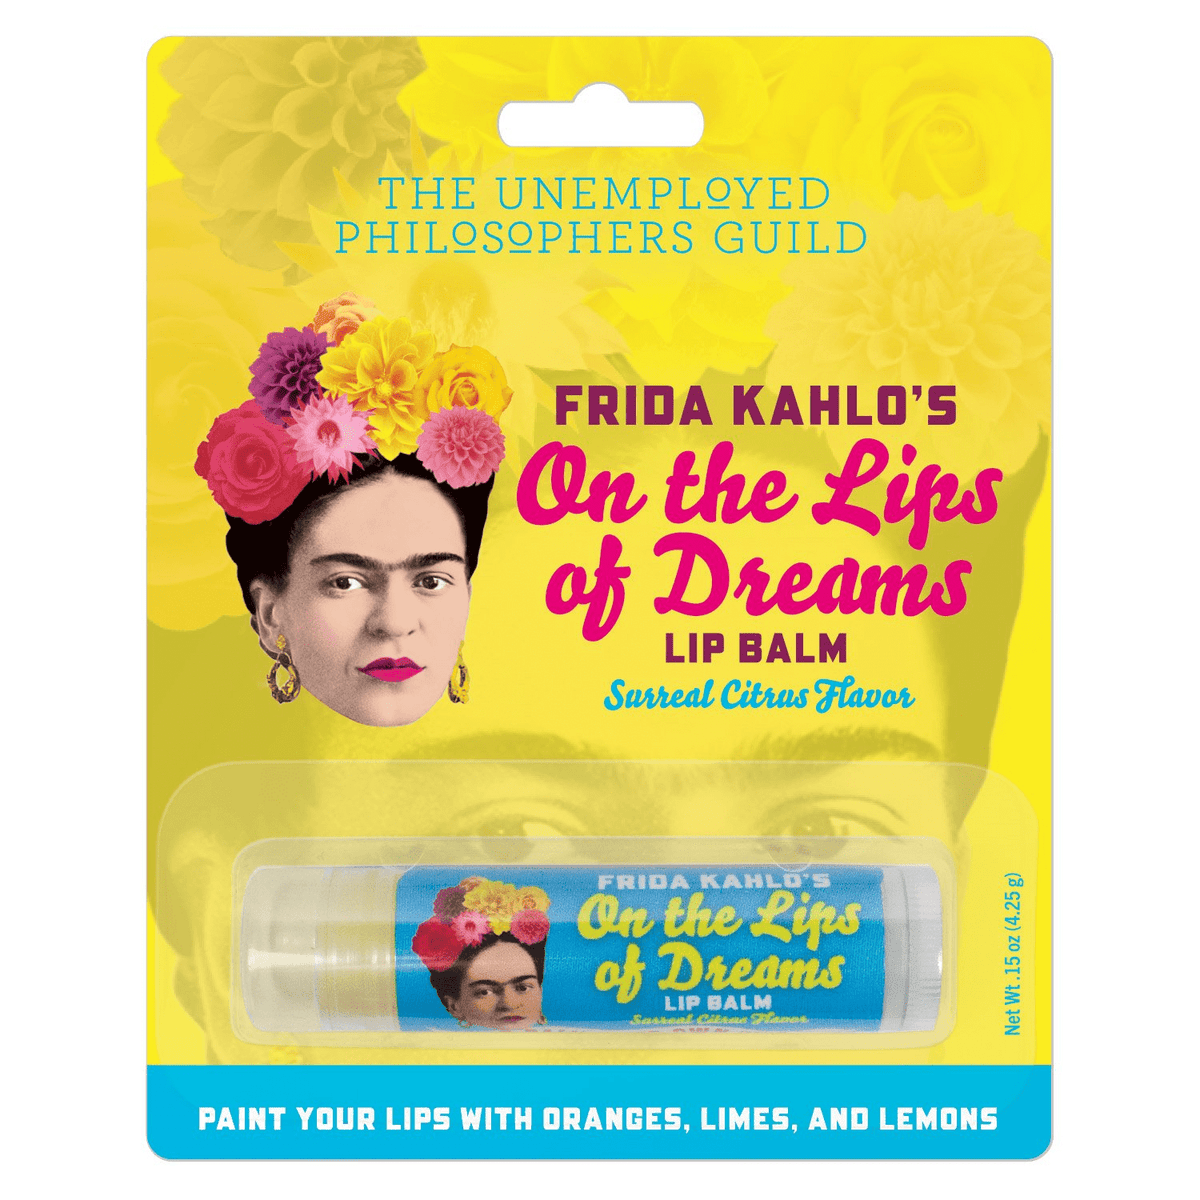 Frida's Lip Balm Unemployed Philosophers Guild Clothing/Accessories